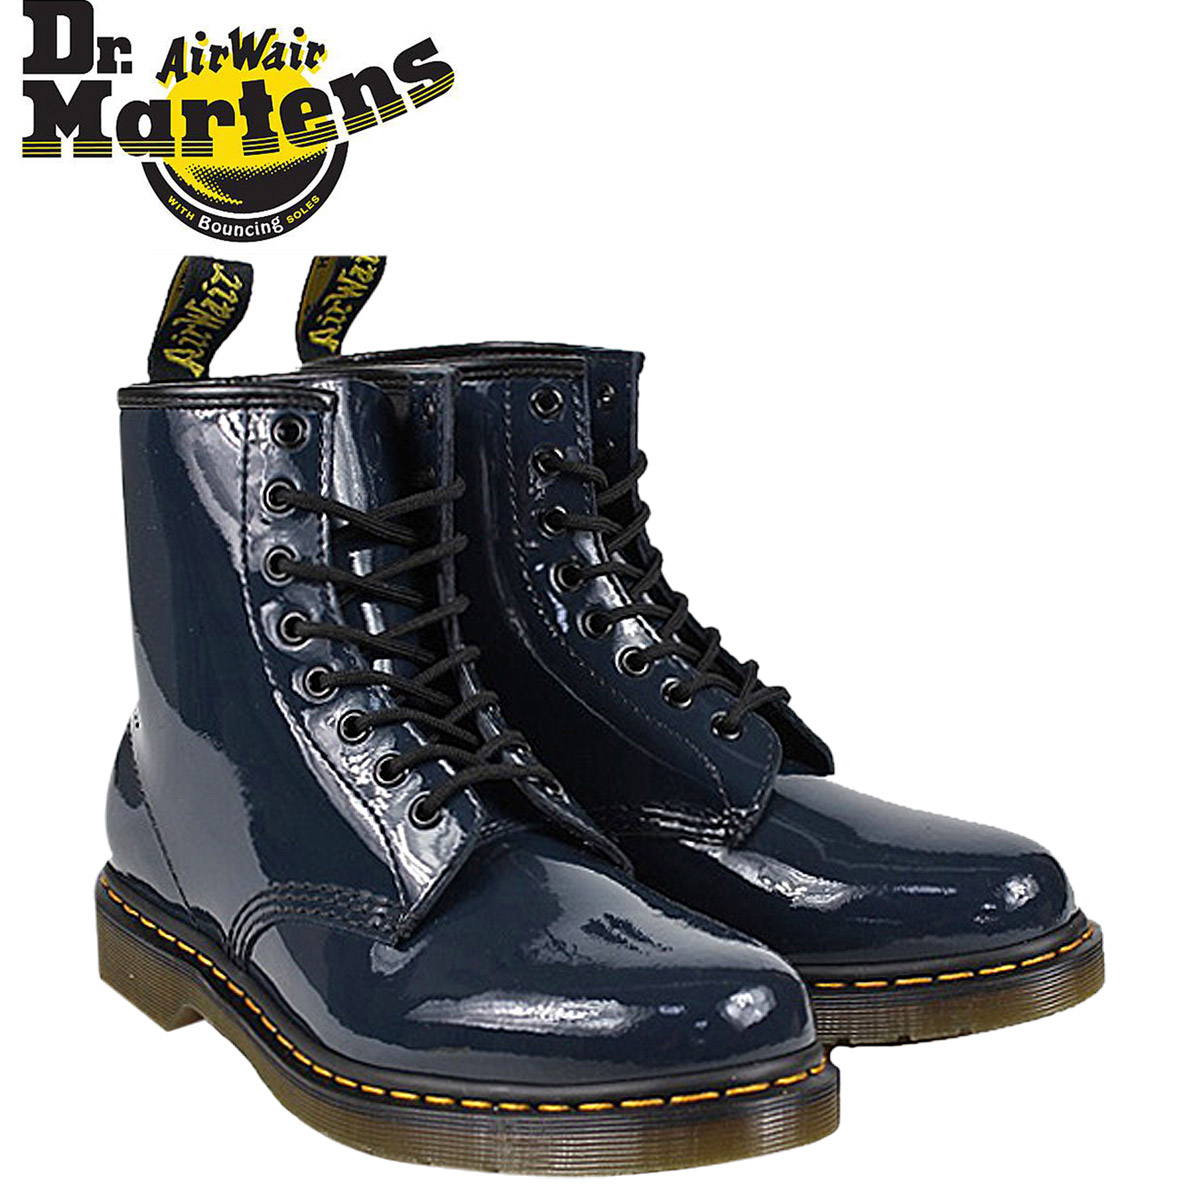 Dr. Martens Dr.Martens 1460 8 hole boots [Navy] R11822412 MODERN CLASSICS patent leather mens Womens 8 EYE BOOTS unisex [regular]